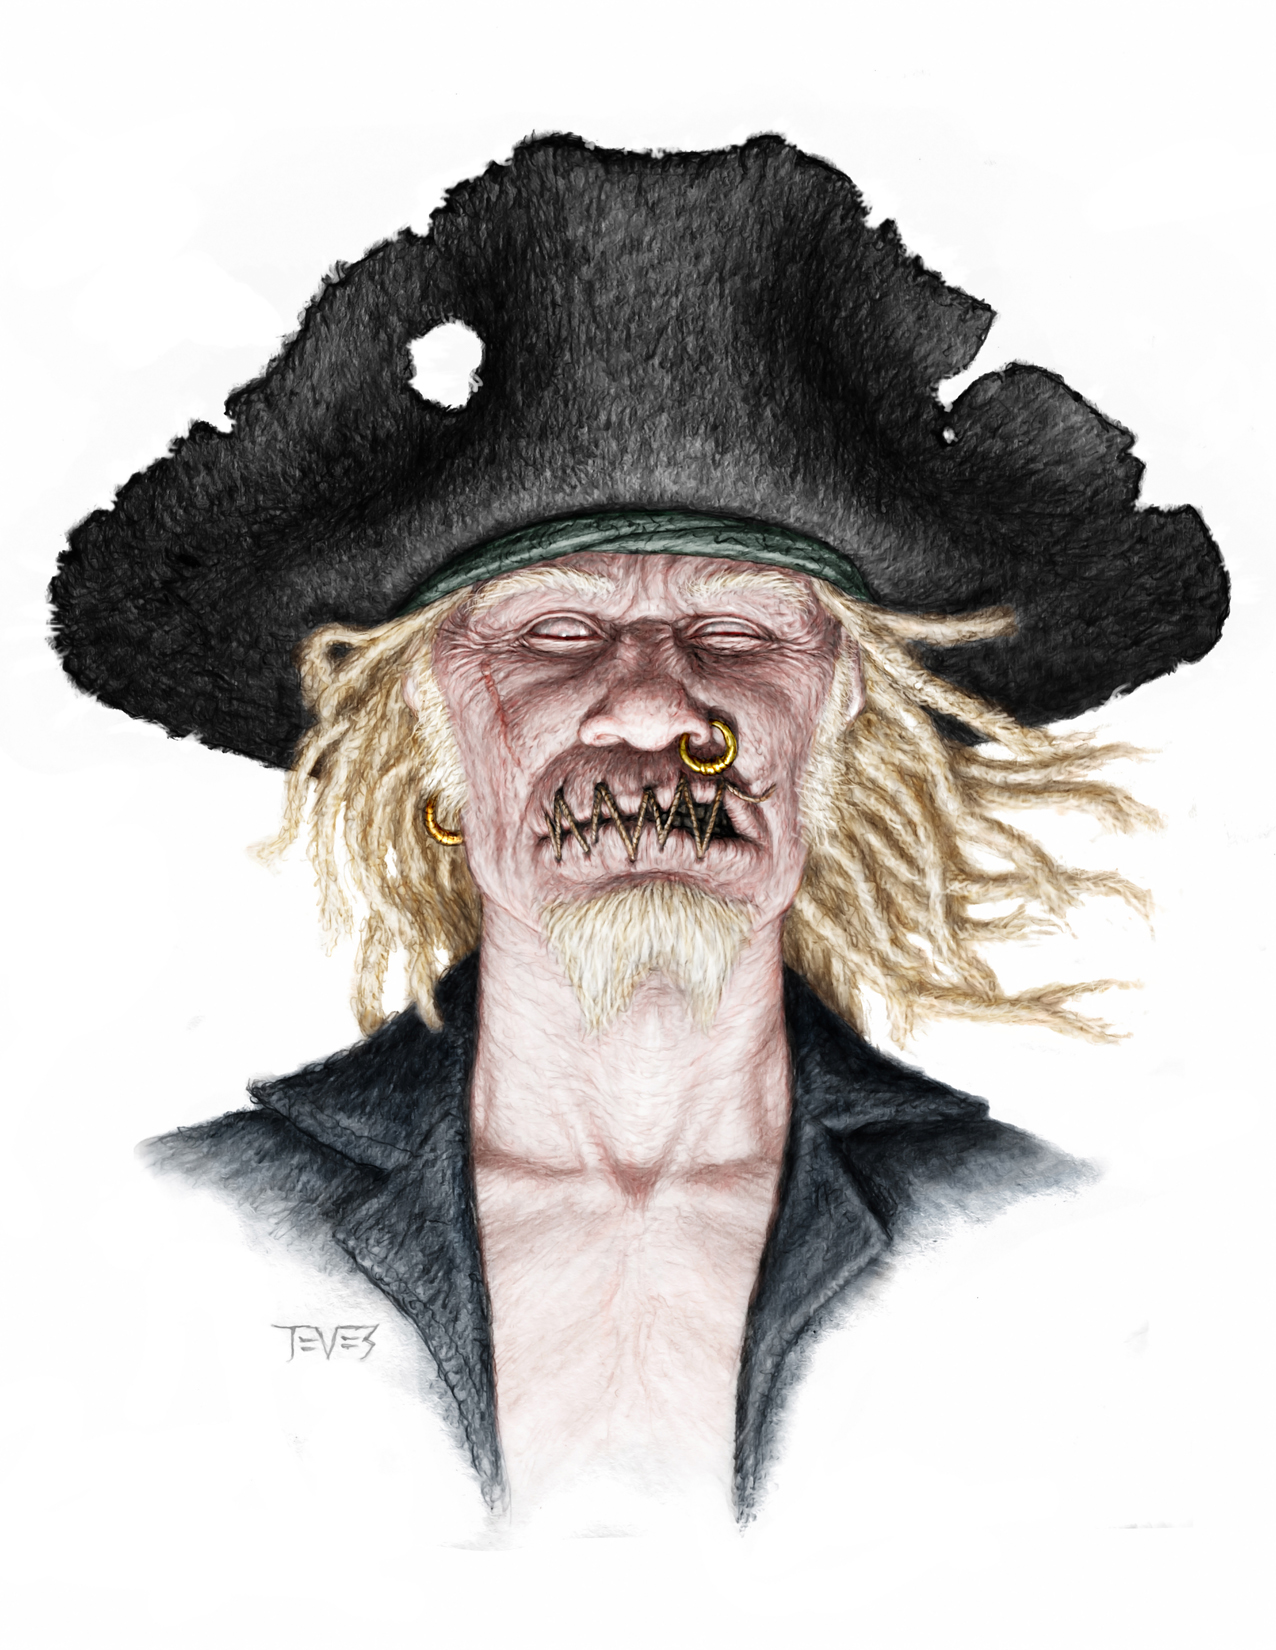 http://collider.com/wp-content/uploads/pirates-of-the-caribbean-on-stranger-tides-concept-art-zombie-06.jpg